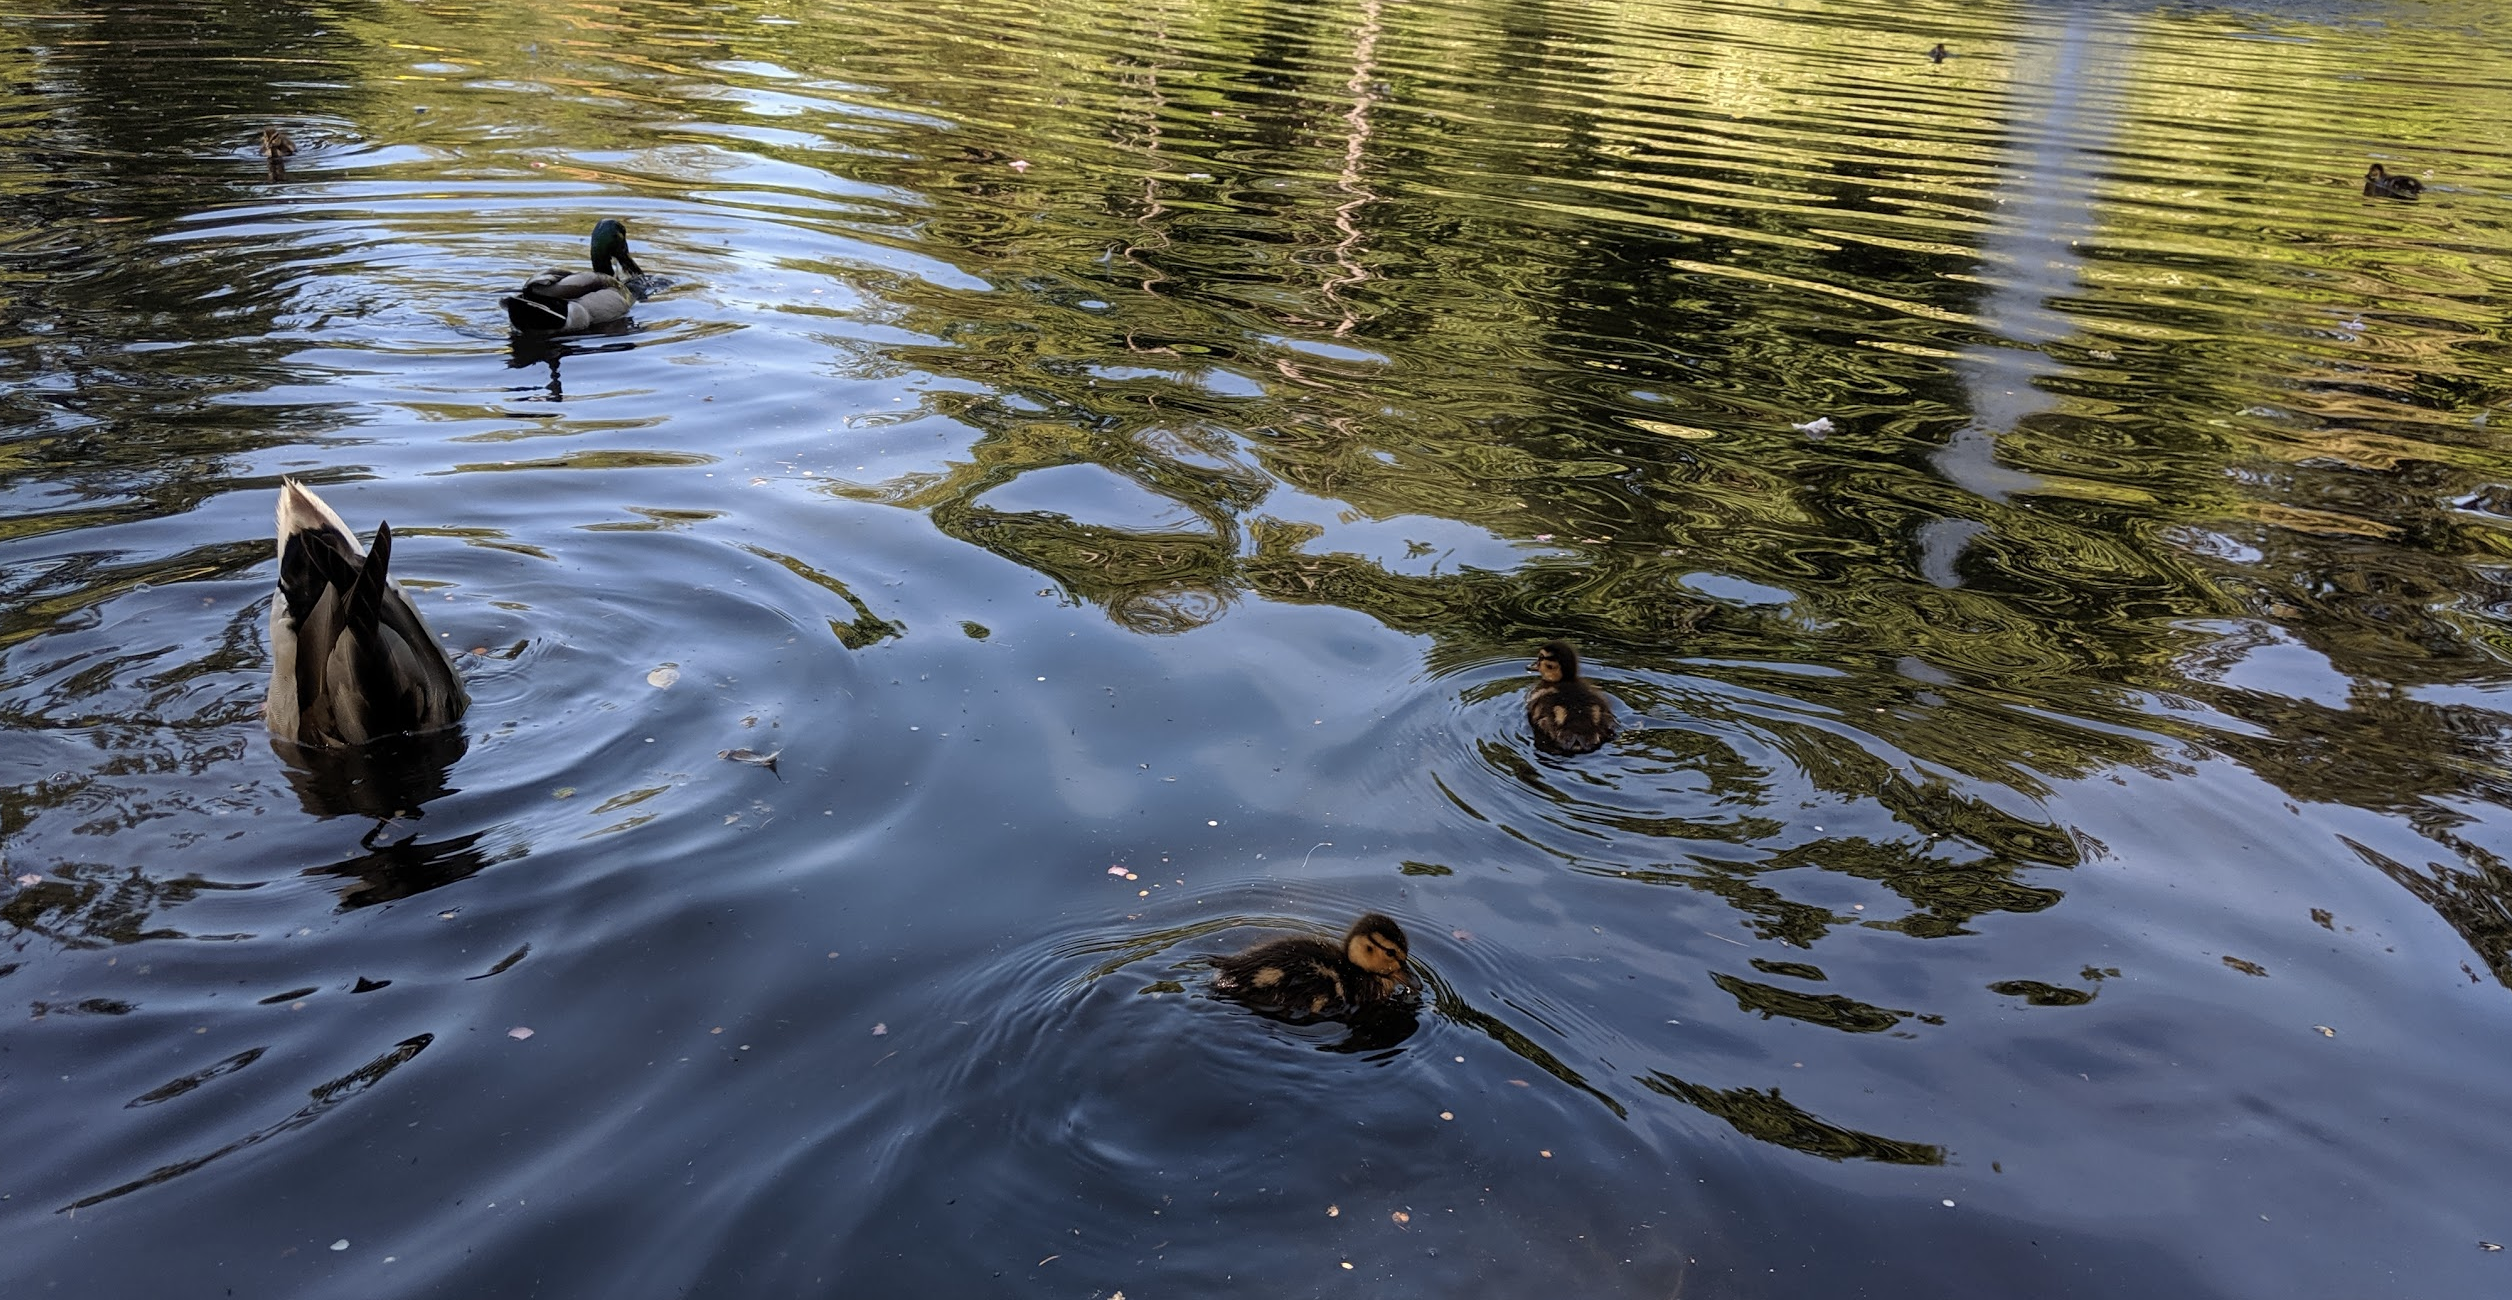 My editor Justin saw some ducks once; it was alright